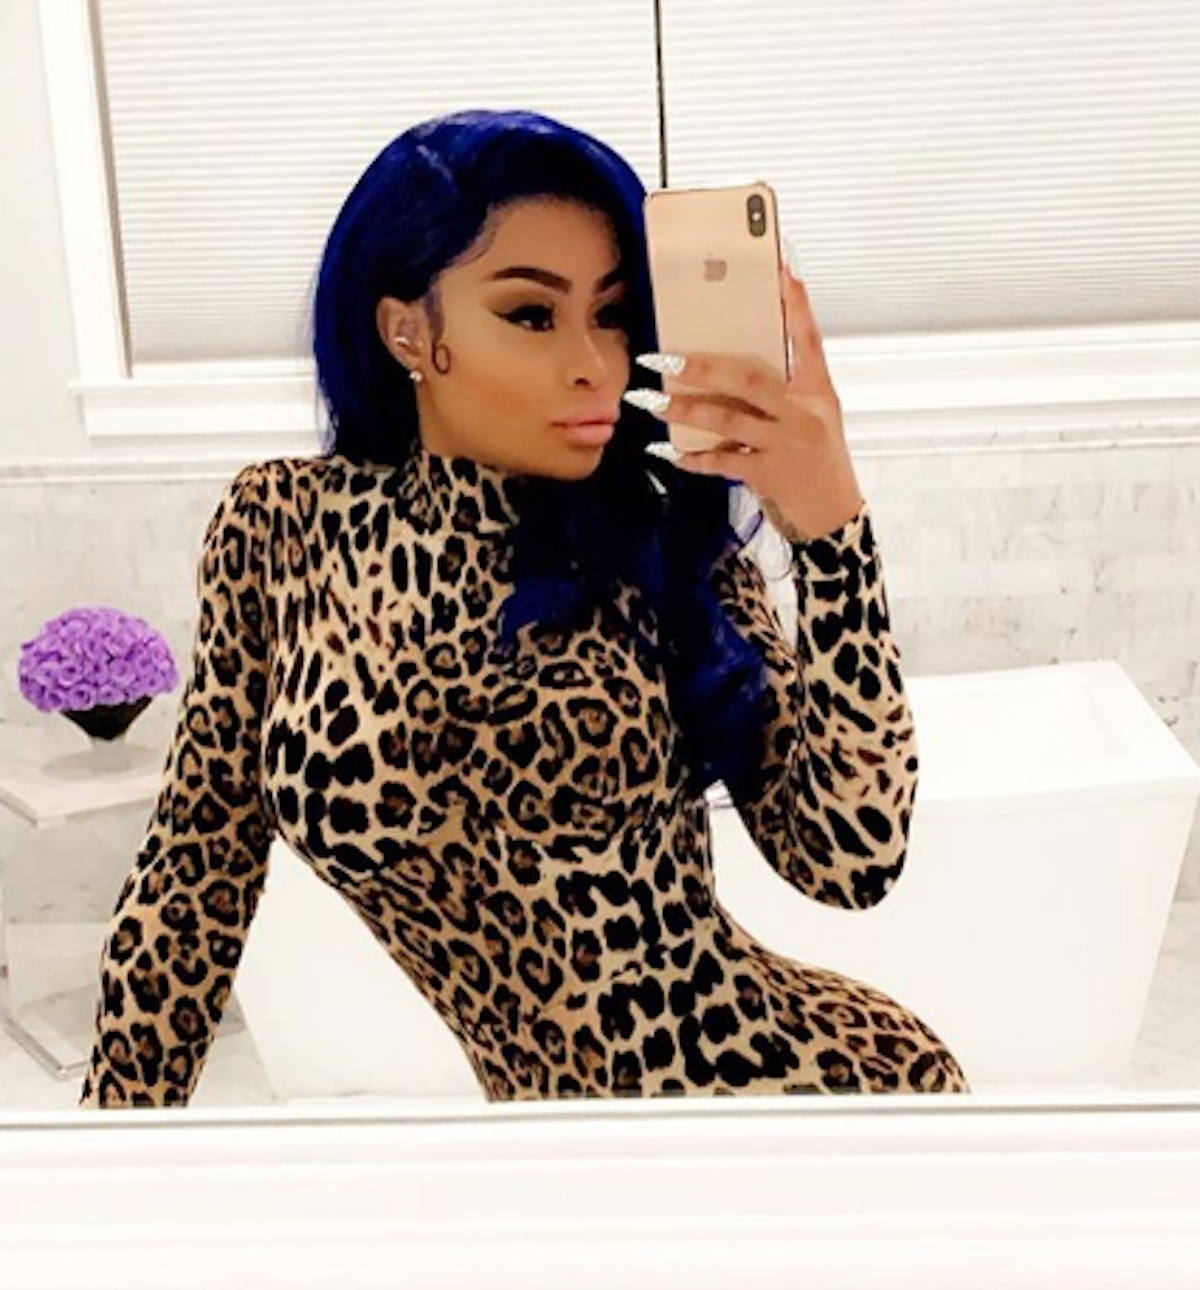 blac chyna opens up to fans in an open letter